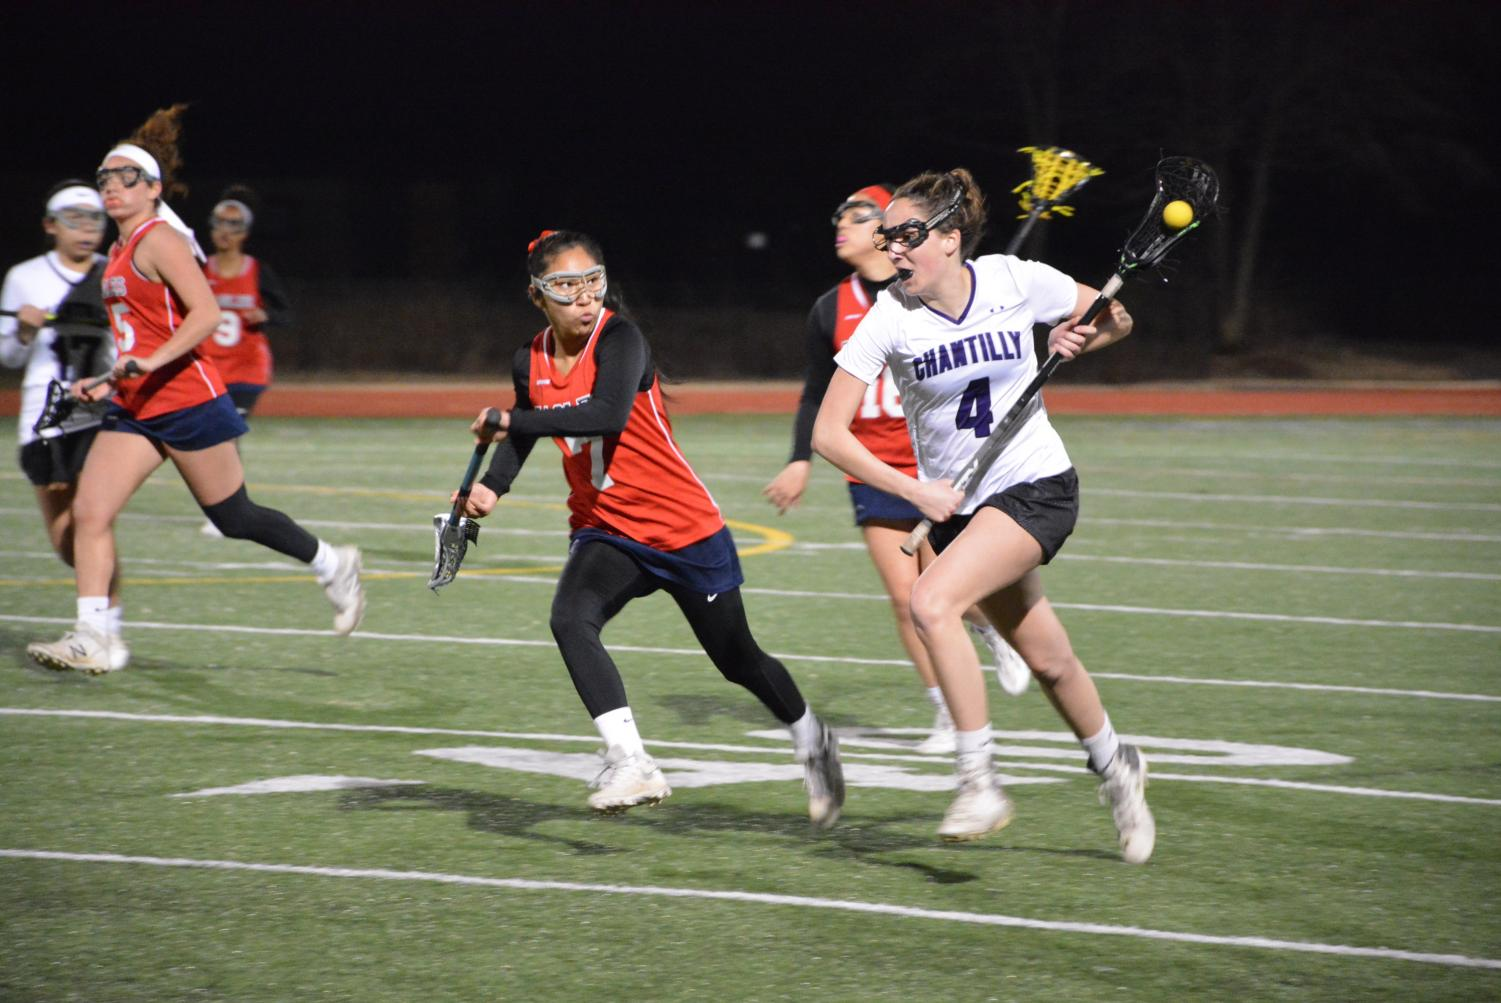 Senior and captain Katie Carita advances the ball down the field during the March 12 home game against Thomas Edison. The team managed its first win of the season, ending the game with a score of 11-2.